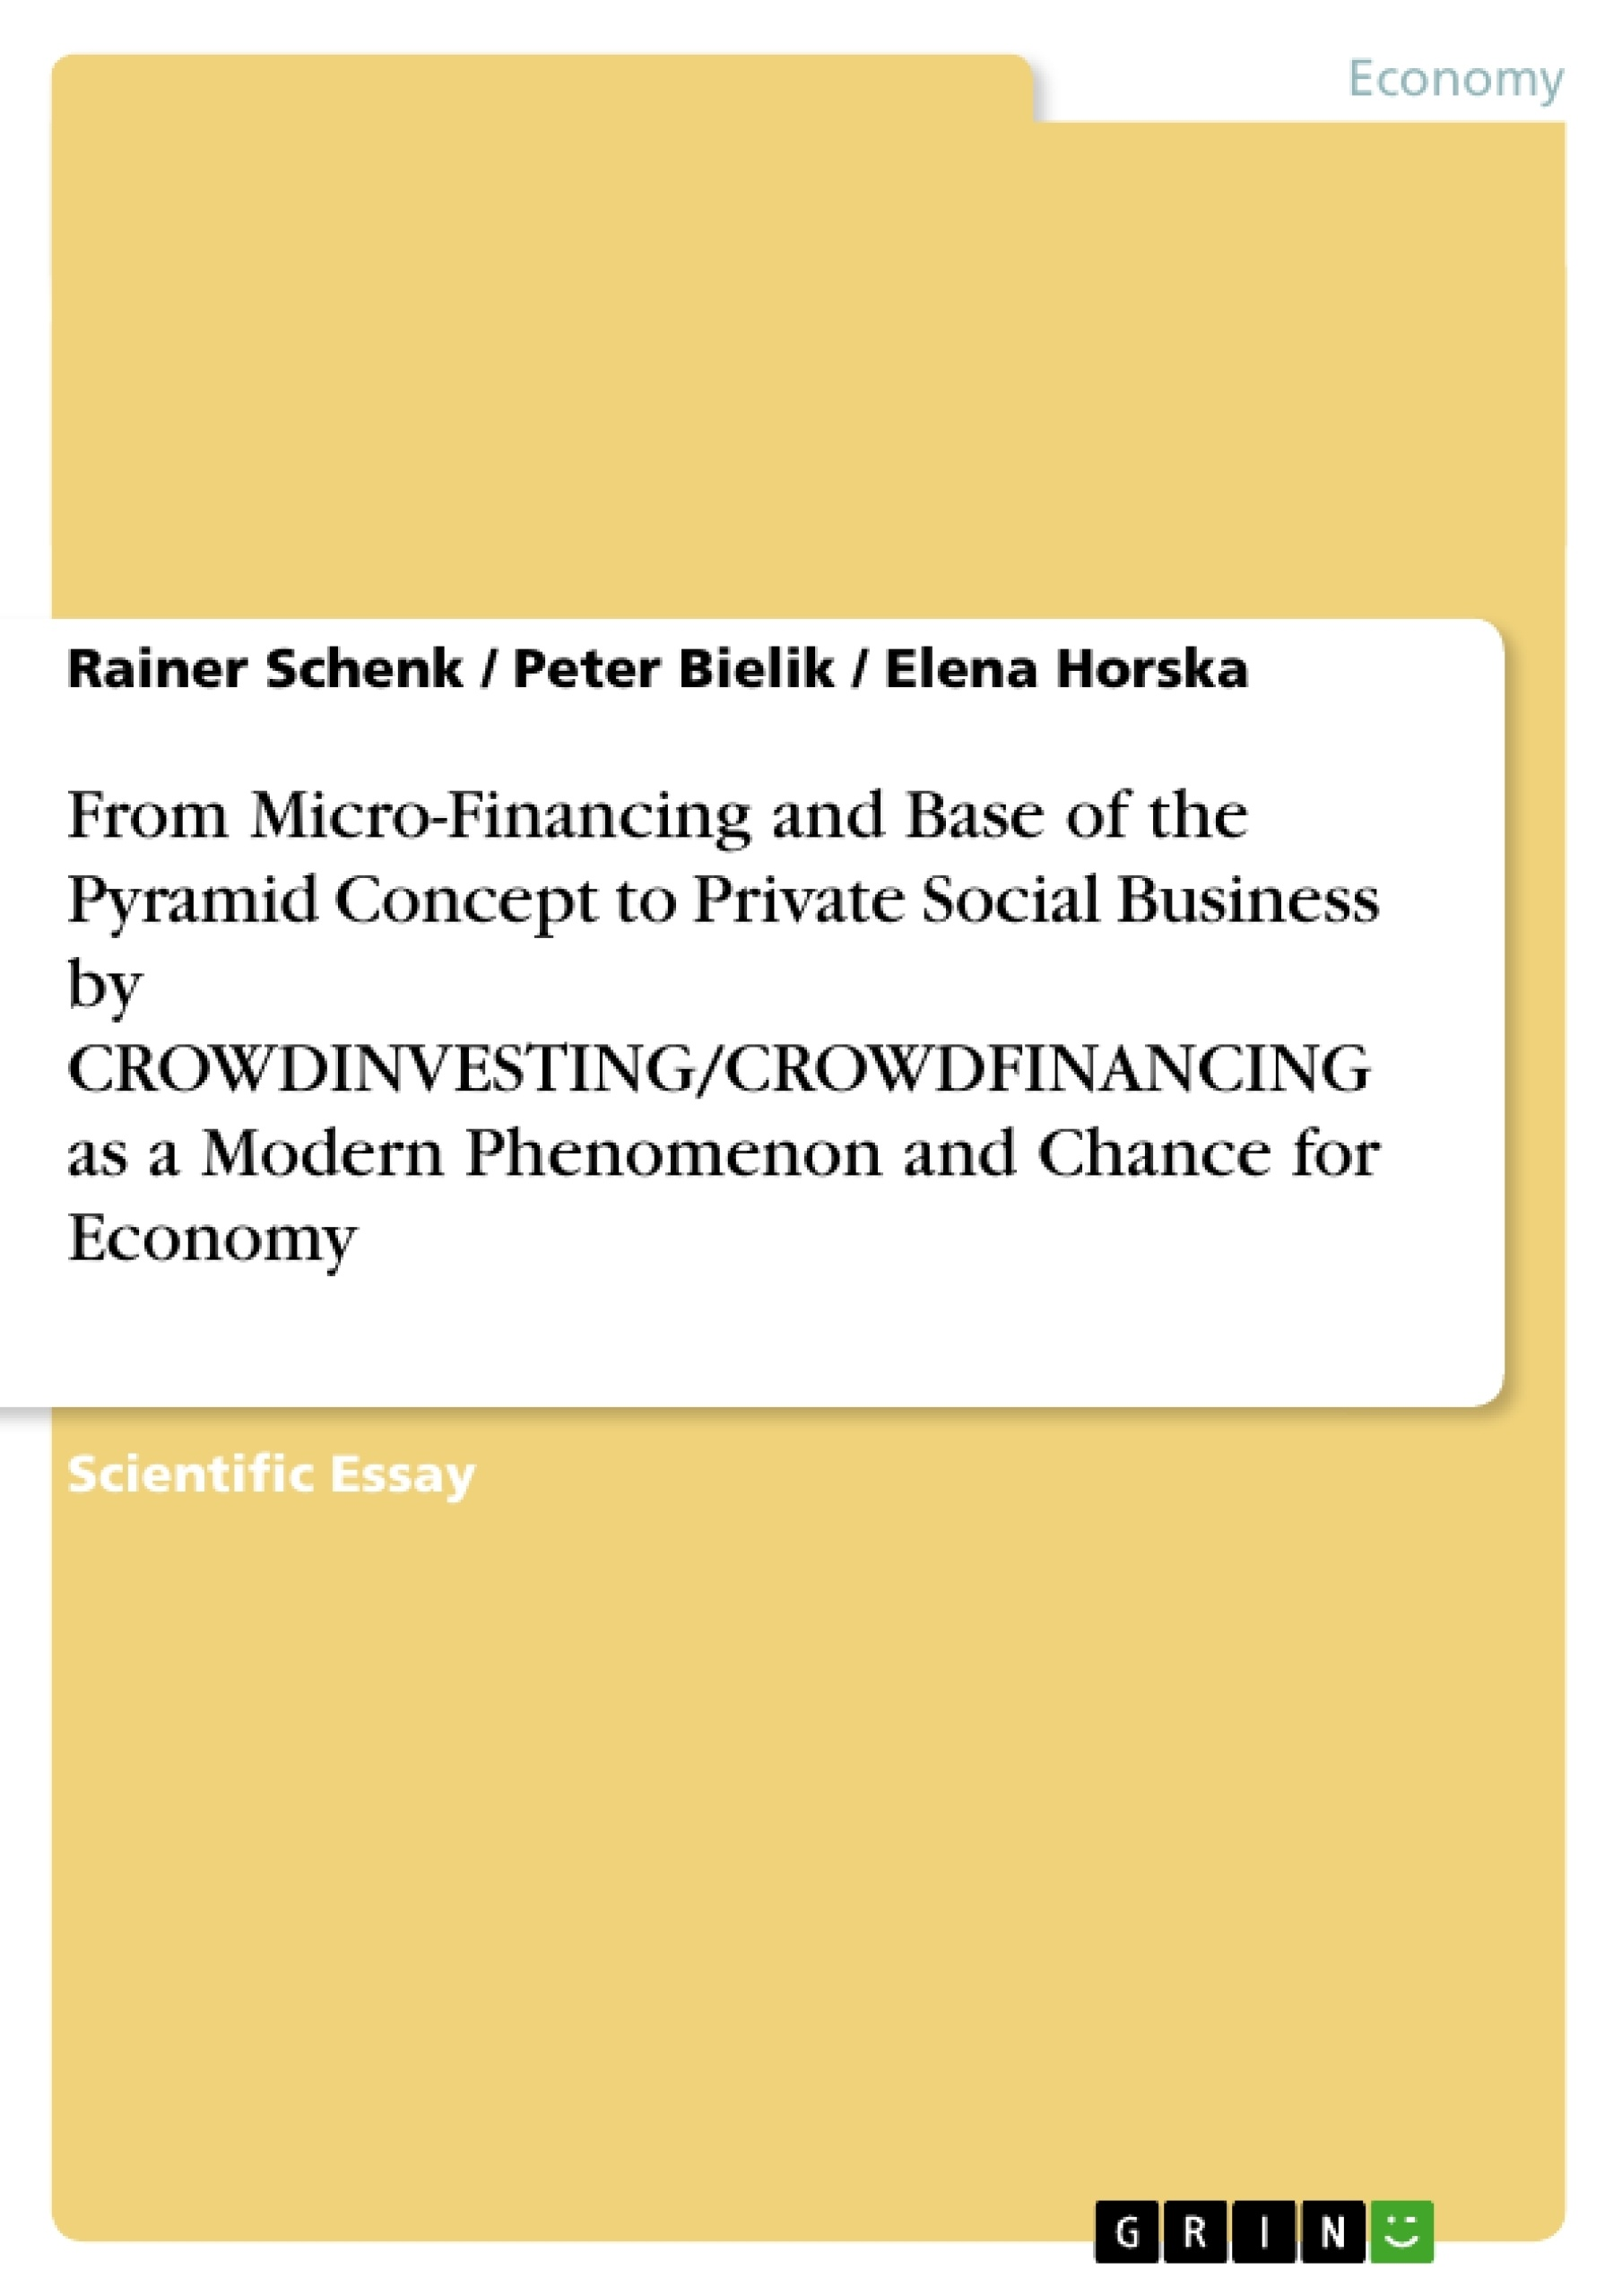 Title: From Micro-Financing and Base of the Pyramid Concept to Private Social Business by CROWDINVESTING/CROWDFINANCING as a Modern Phenomenon and Chance for Economy